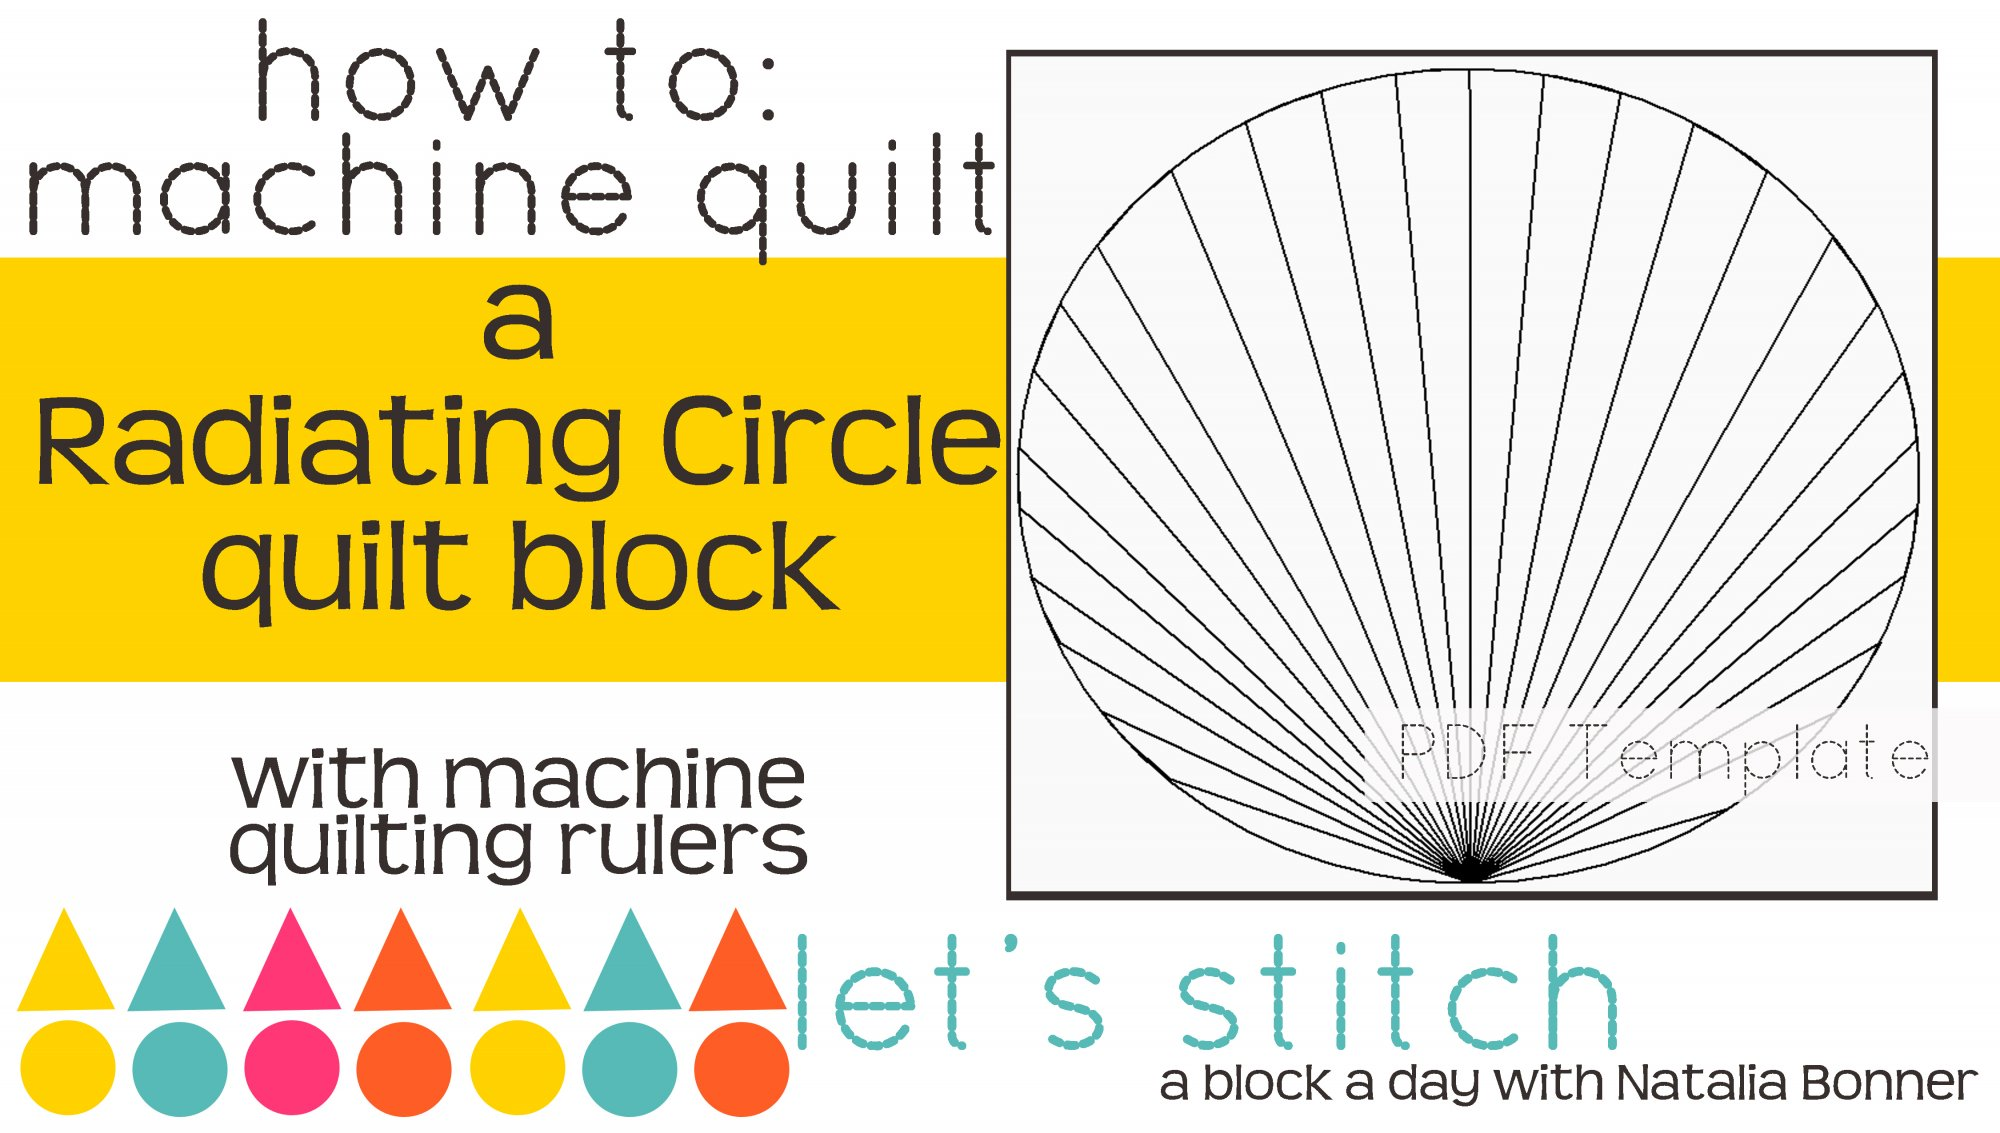 Let's Stitch - A Block a Day With Natalia Bonner - PDF -Radiating Circle